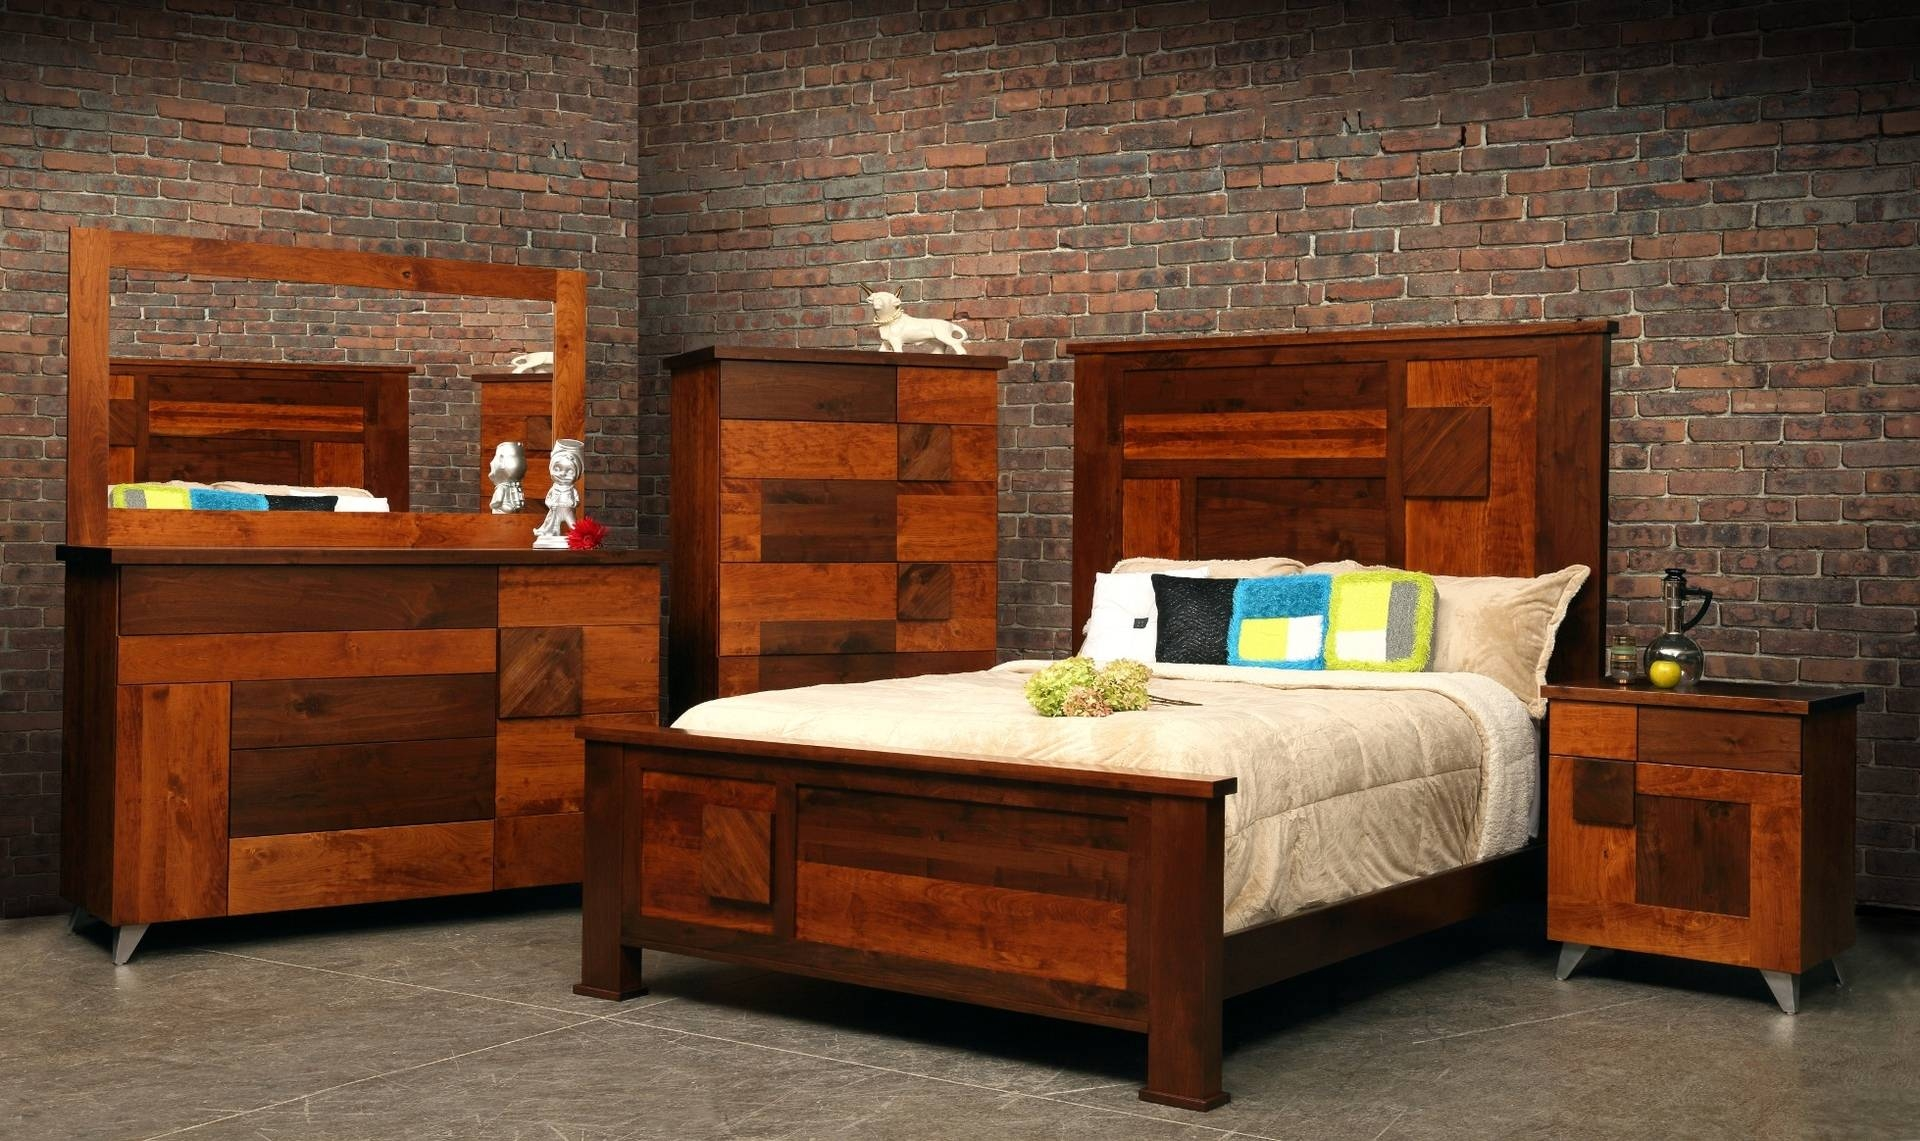 Bedroom Furniture Sets : Our Generation Wardrobe Built In in Solid Wood Built in Wardrobes (Image 15 of 30)